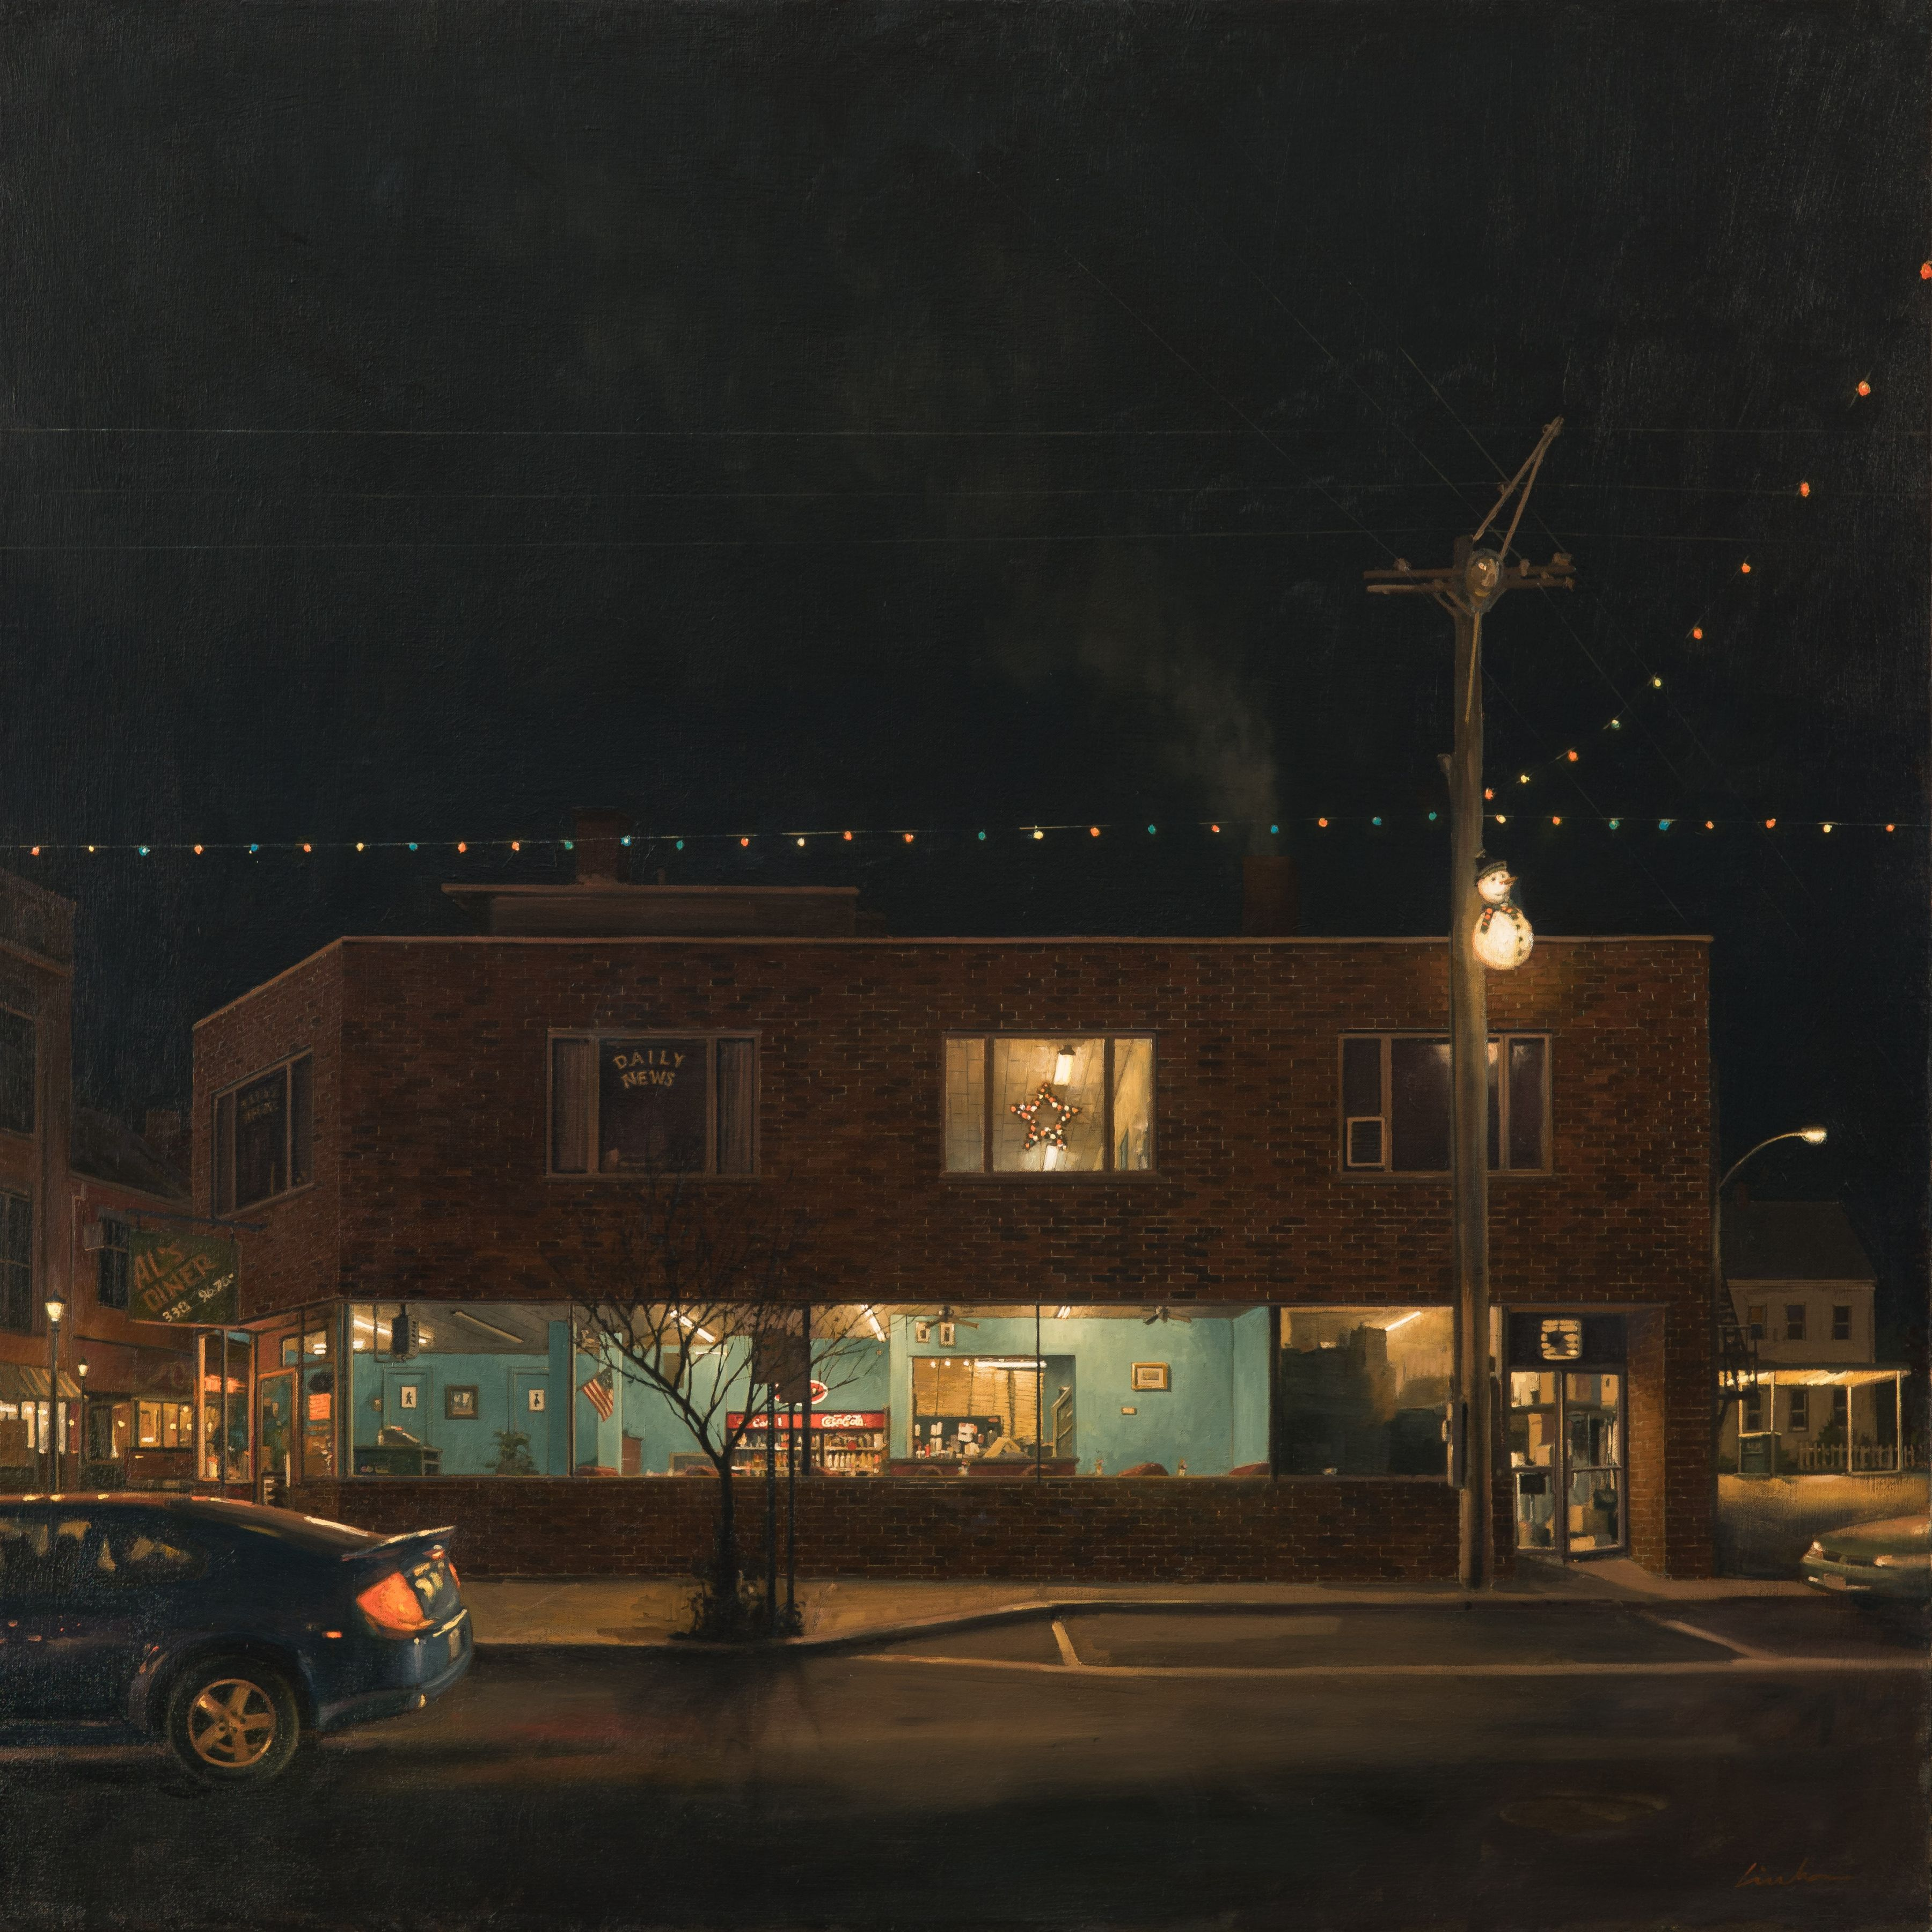 linden frederick, Takeout (SOLD), 2016, oil on linen, 36 x 36 inches, this painting inspired the short story, Takeout, by Tess Gerritsen